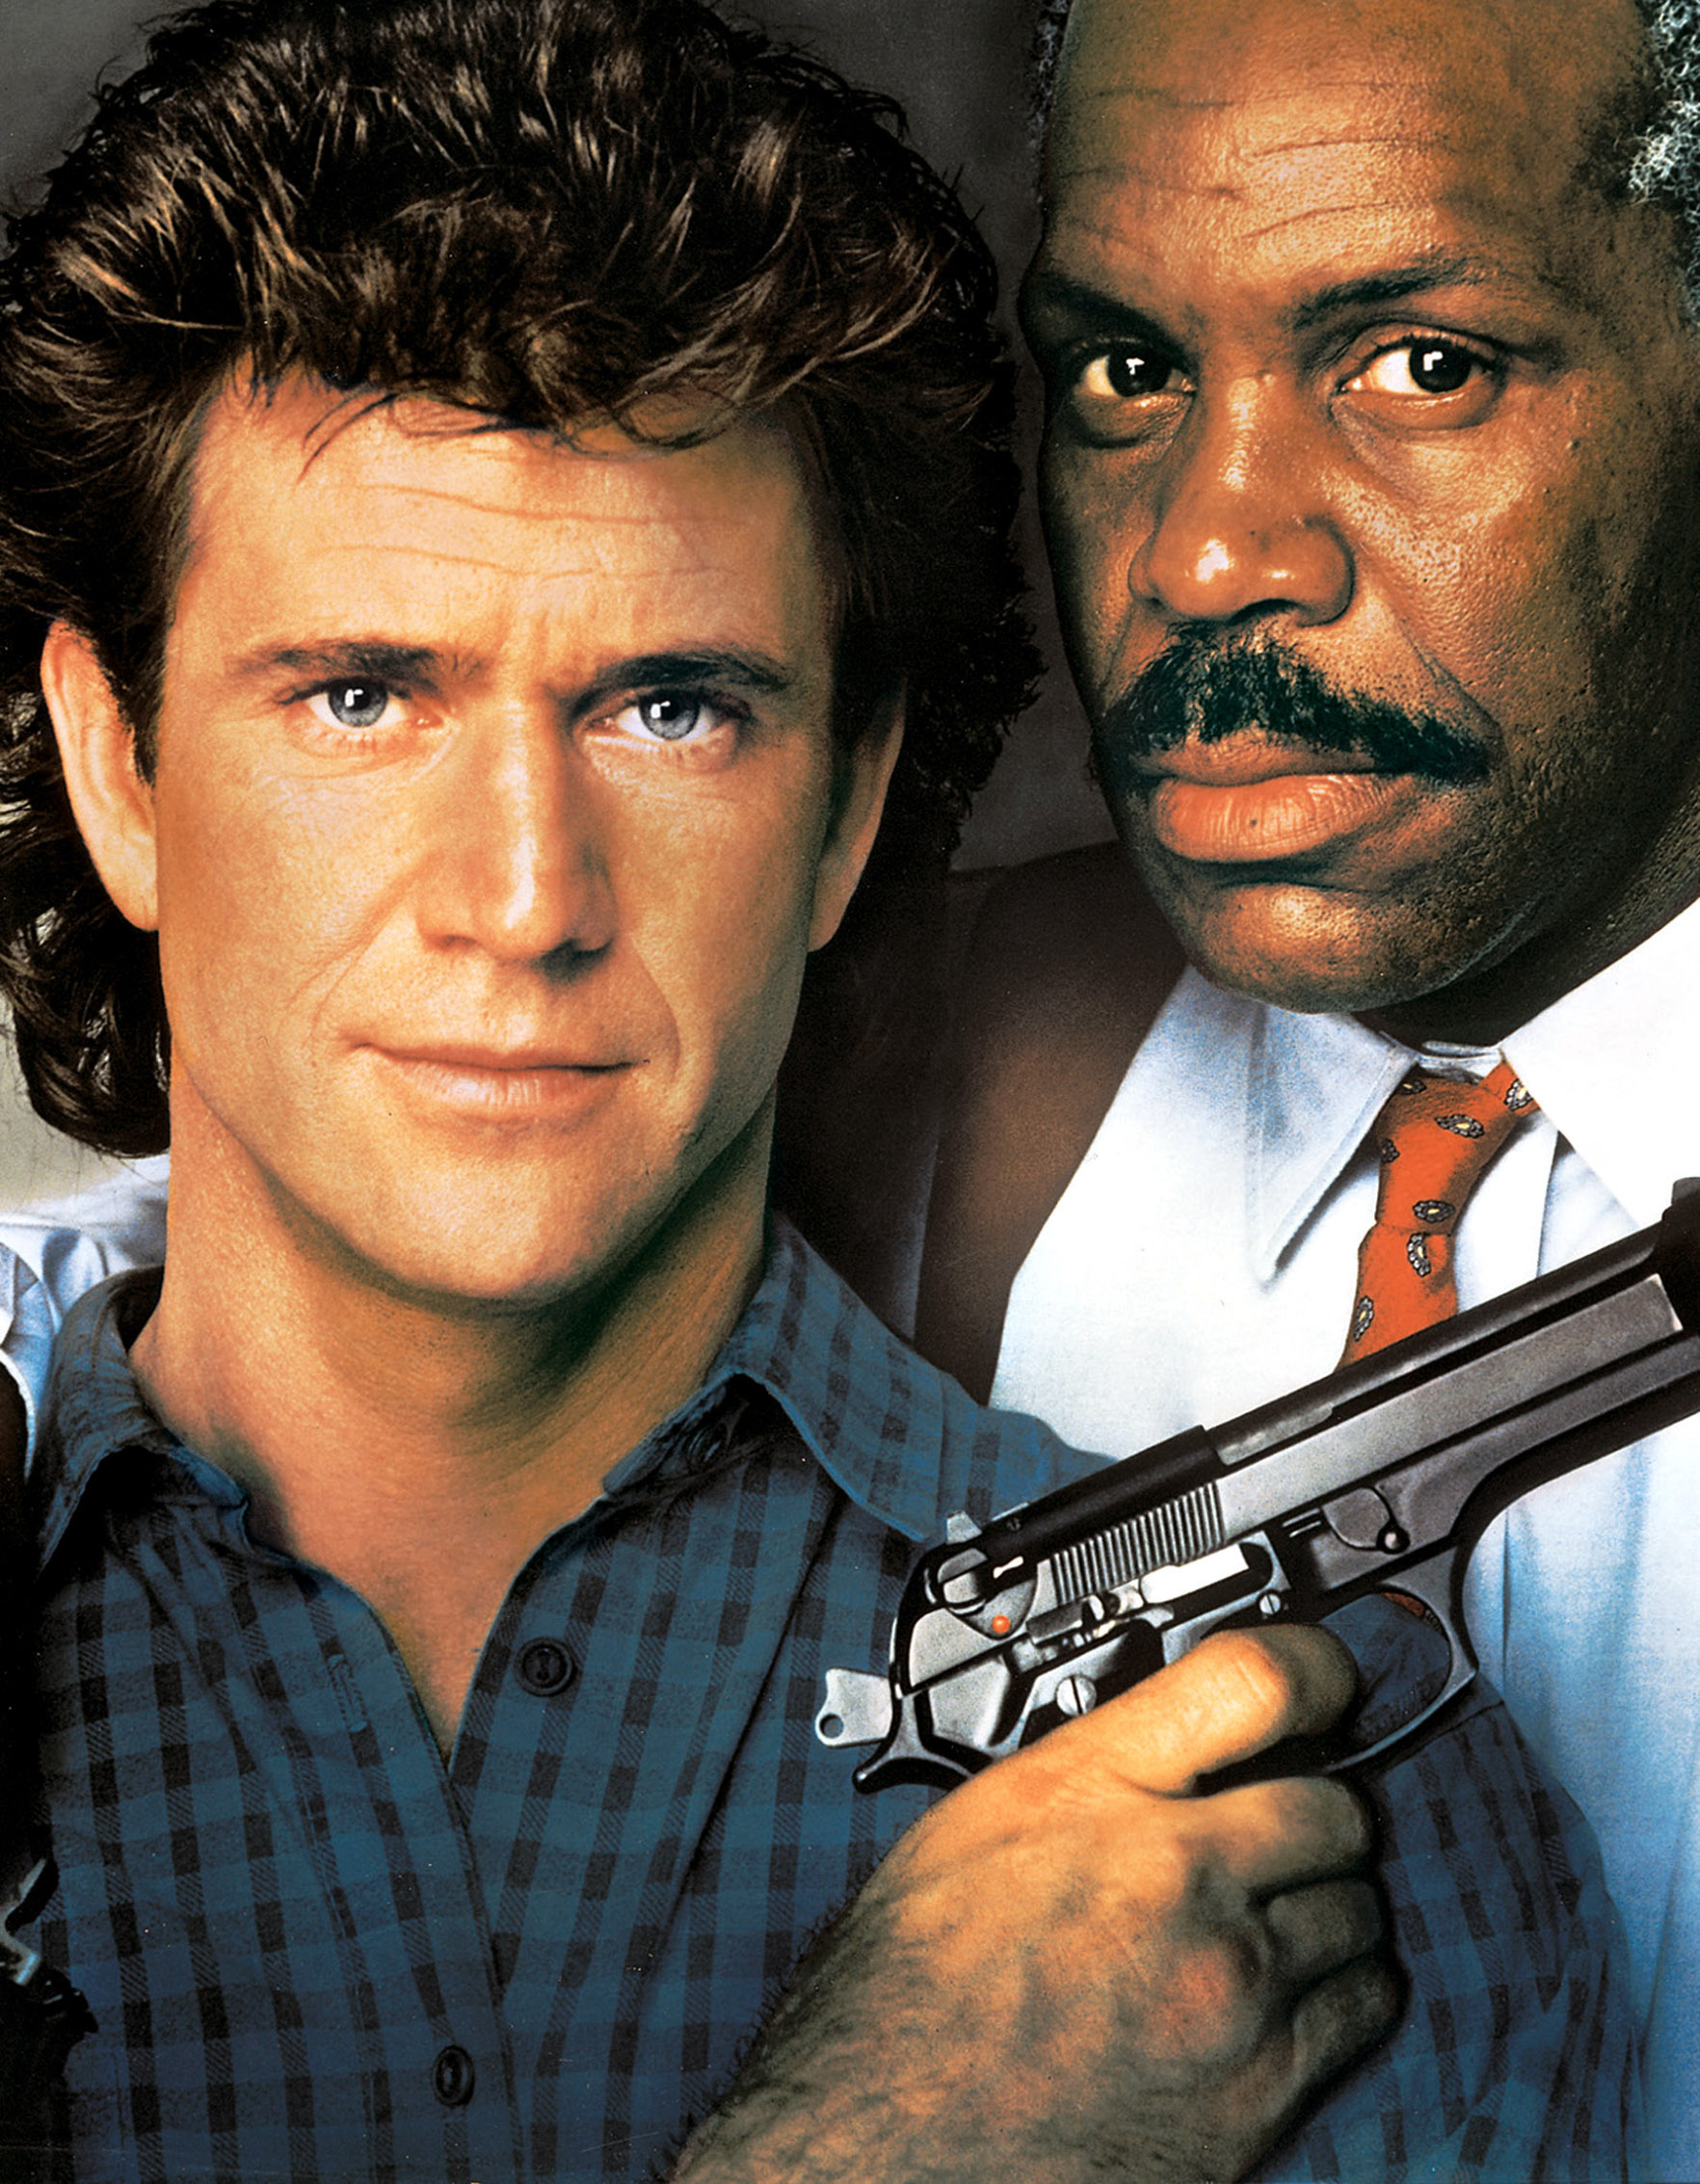 LETHAL WEAPON 2, Mel Gibson, Danny Glover, 1989, (c) Warner Brothers/courtesy Everett Collection, Image: 97953644, License: Rights-managed, Restrictions: For usage credit please use; ©Warner Bros/Courtesy Everett Collection, Model Release: no, Credit line: Warner Bros Collection / Everett / Profimedia